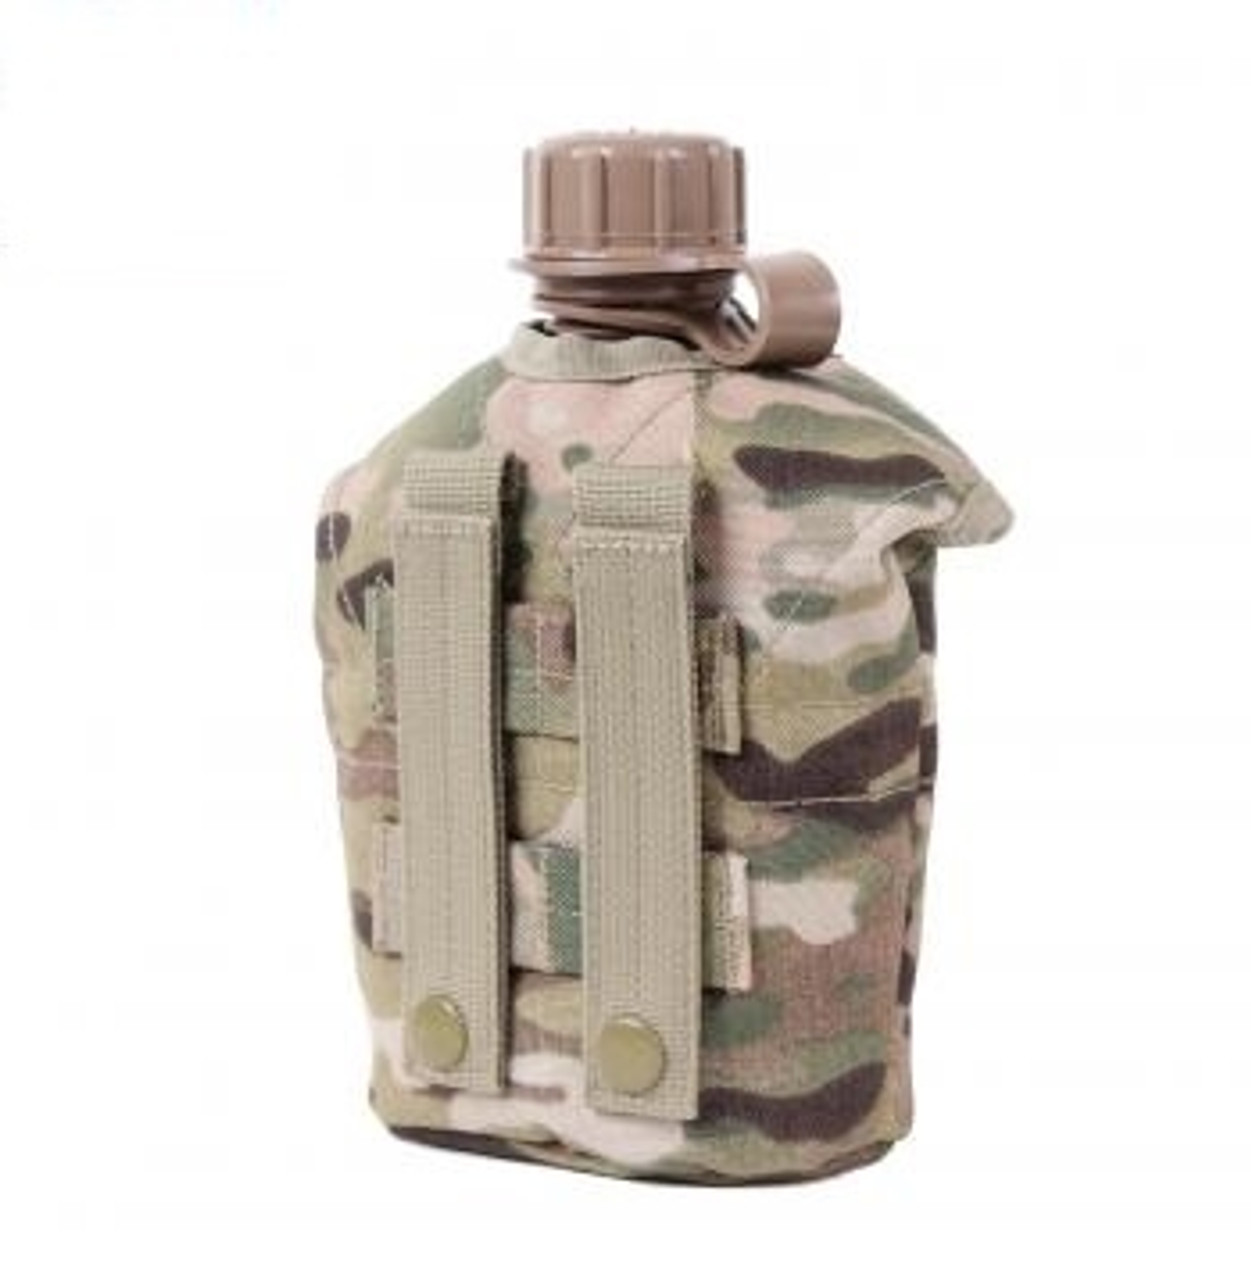 GI Style MOLLE Canteen Cover- MultiCam from Hessen Antique